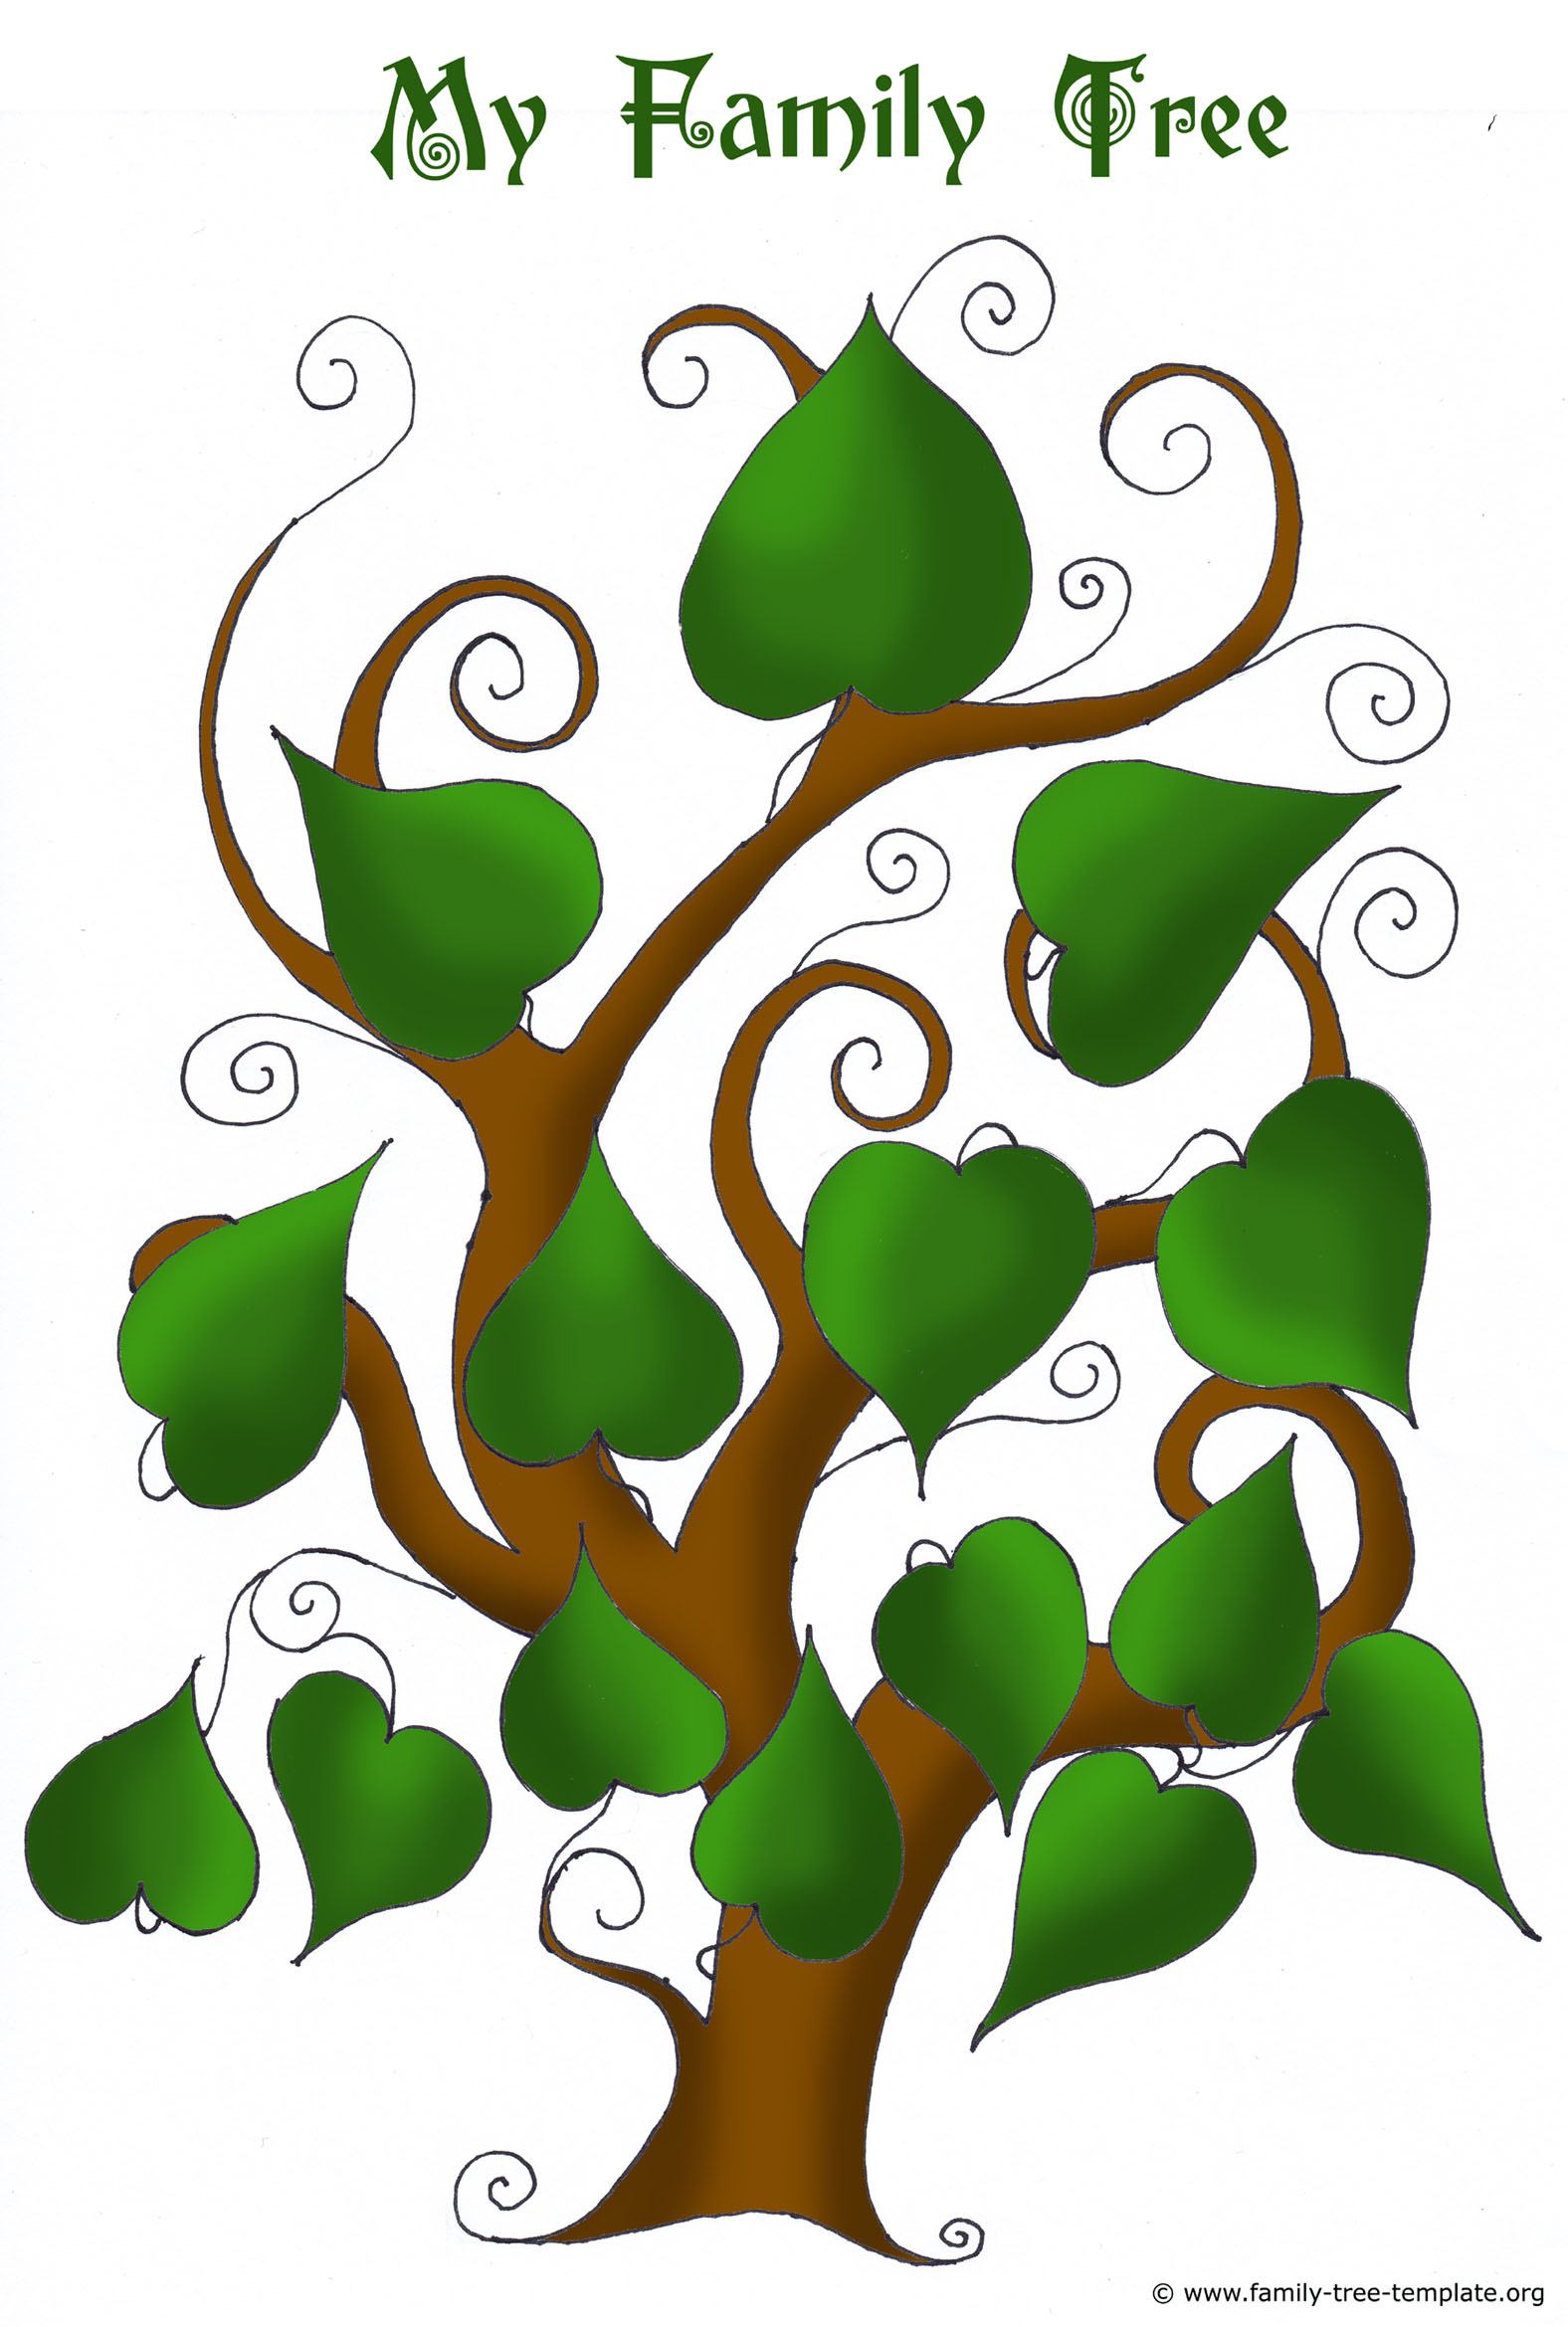 Free family tree templates using free ancestry for Picture of a family tree template